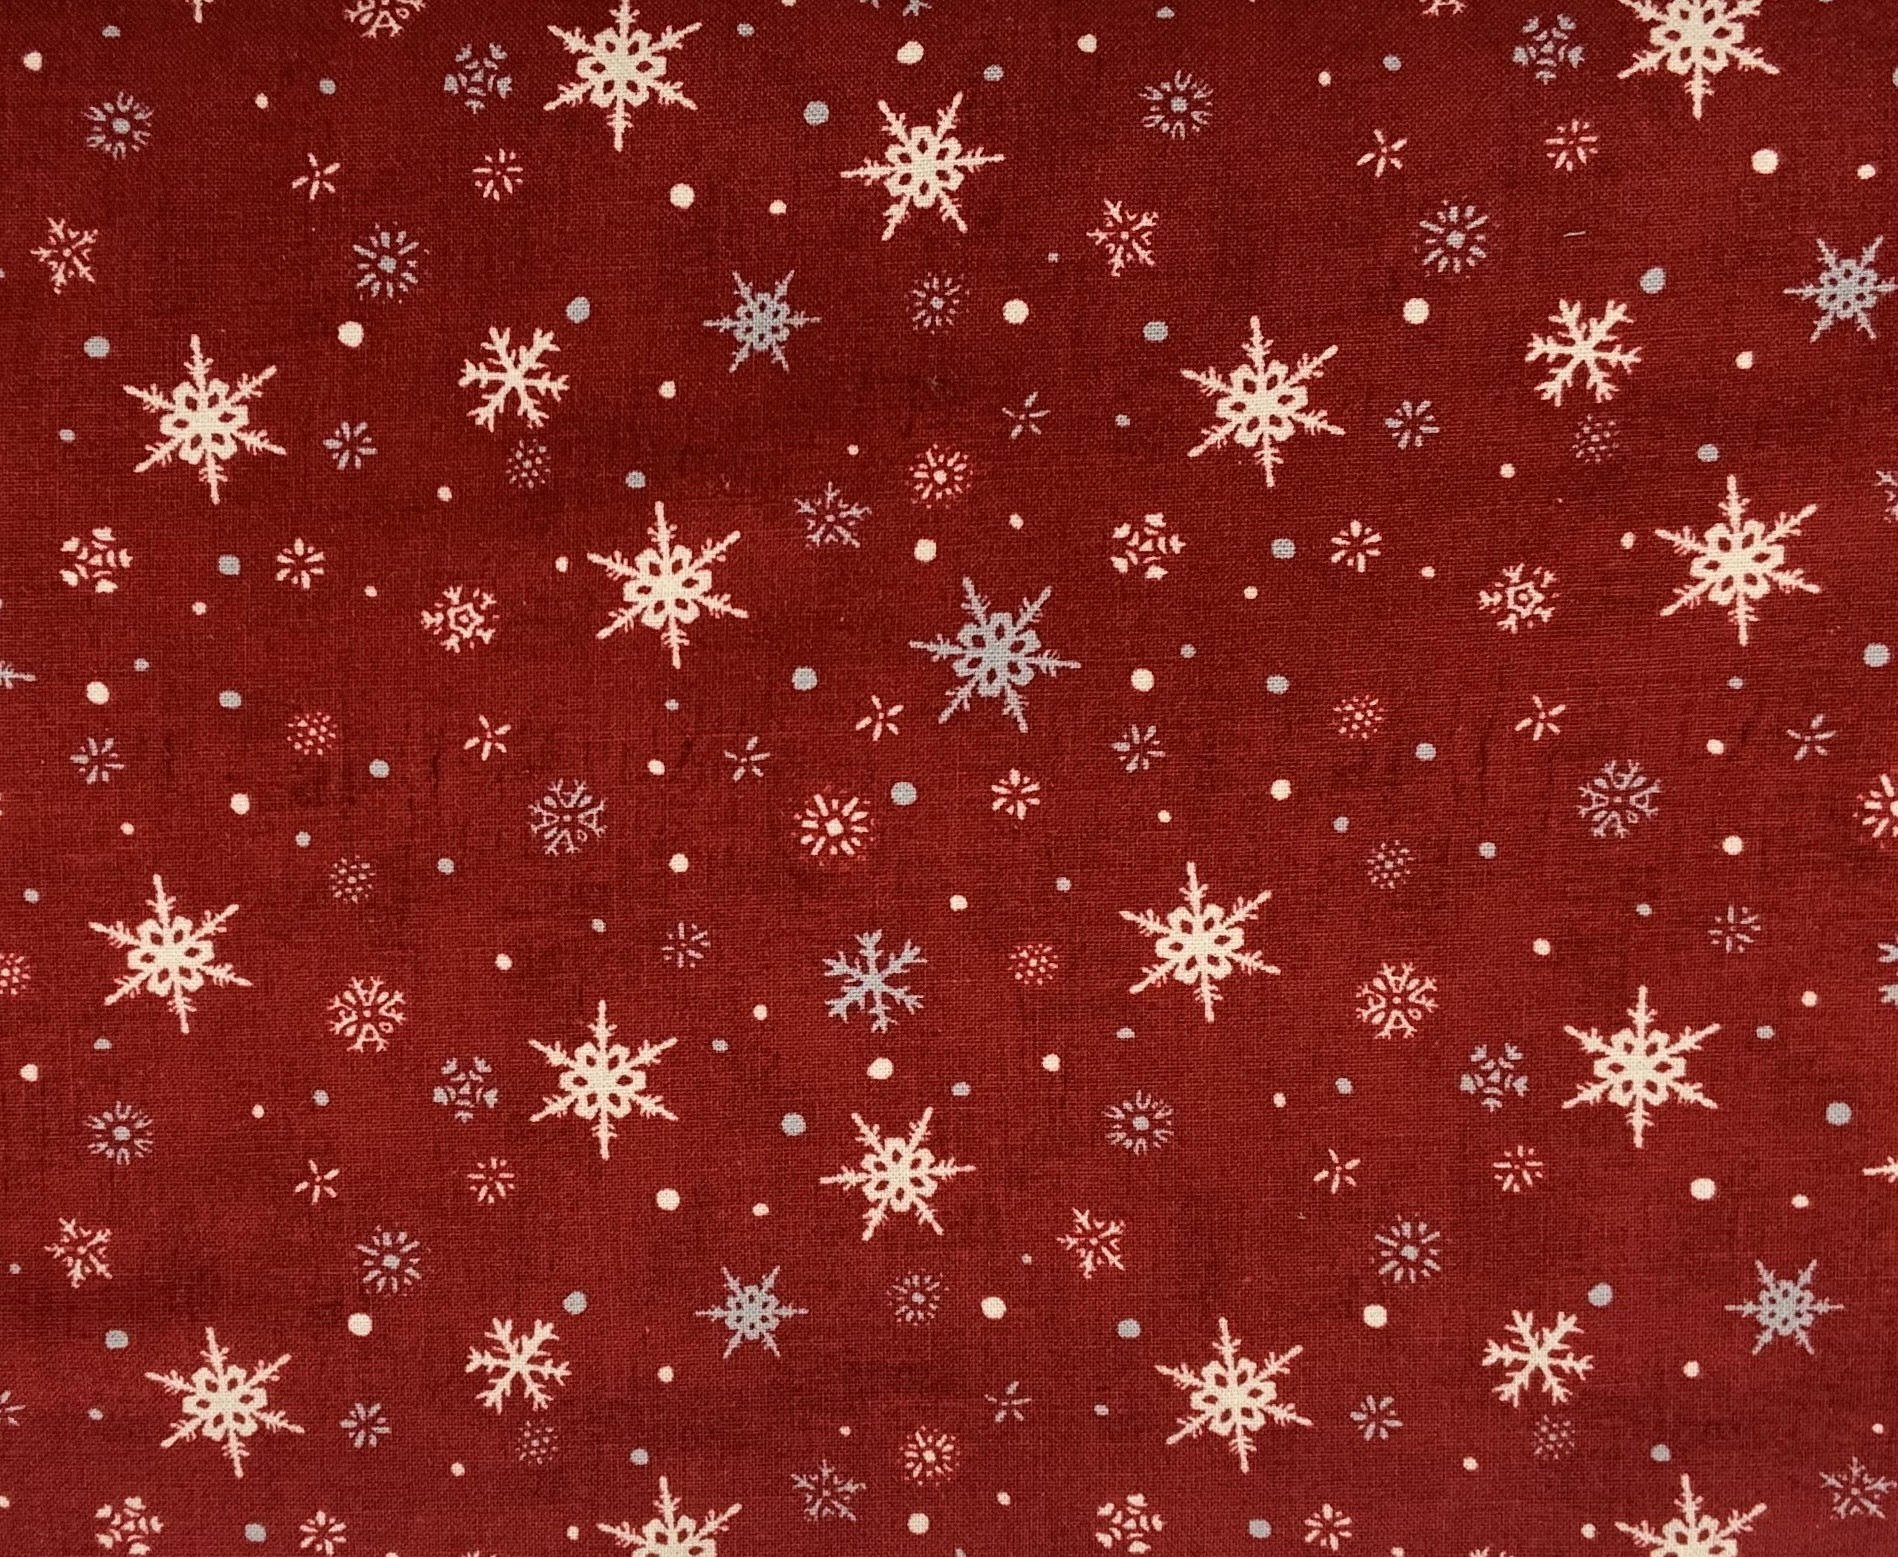 Holiday in the Woods - Snowflakes Red